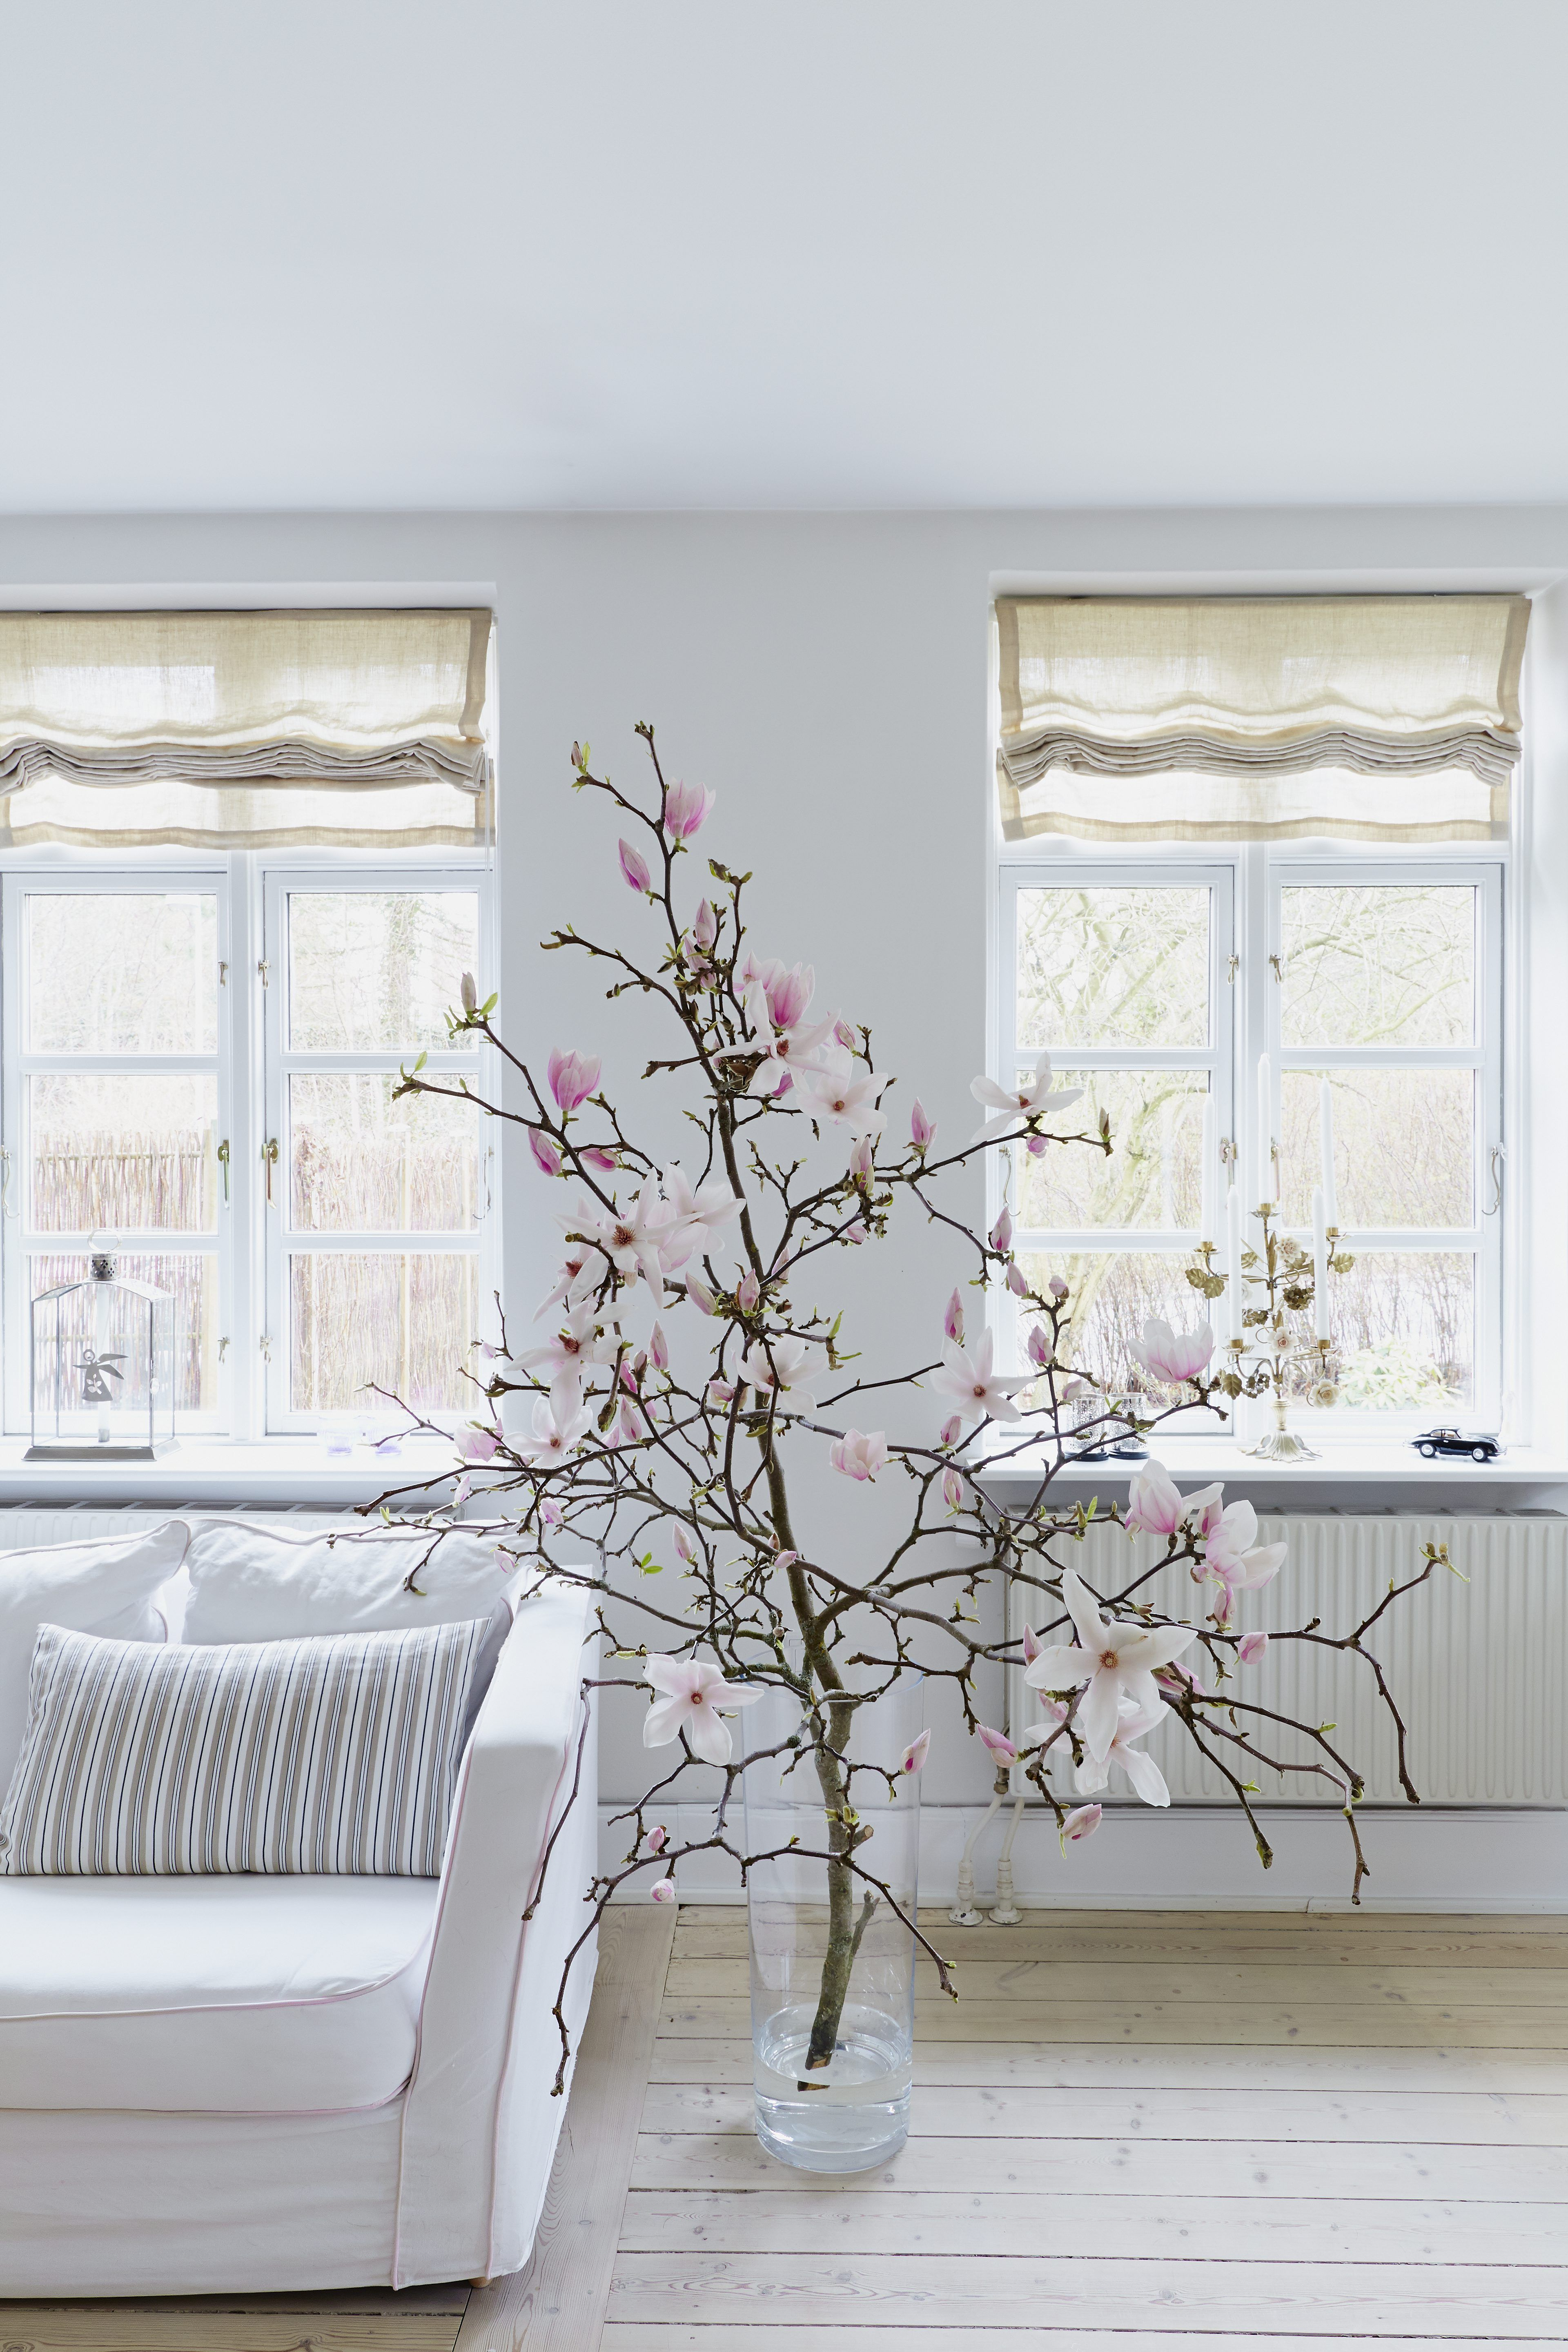 Ramas Decoradas How Stunning Is This Huge Magnolia Branch Inside The House